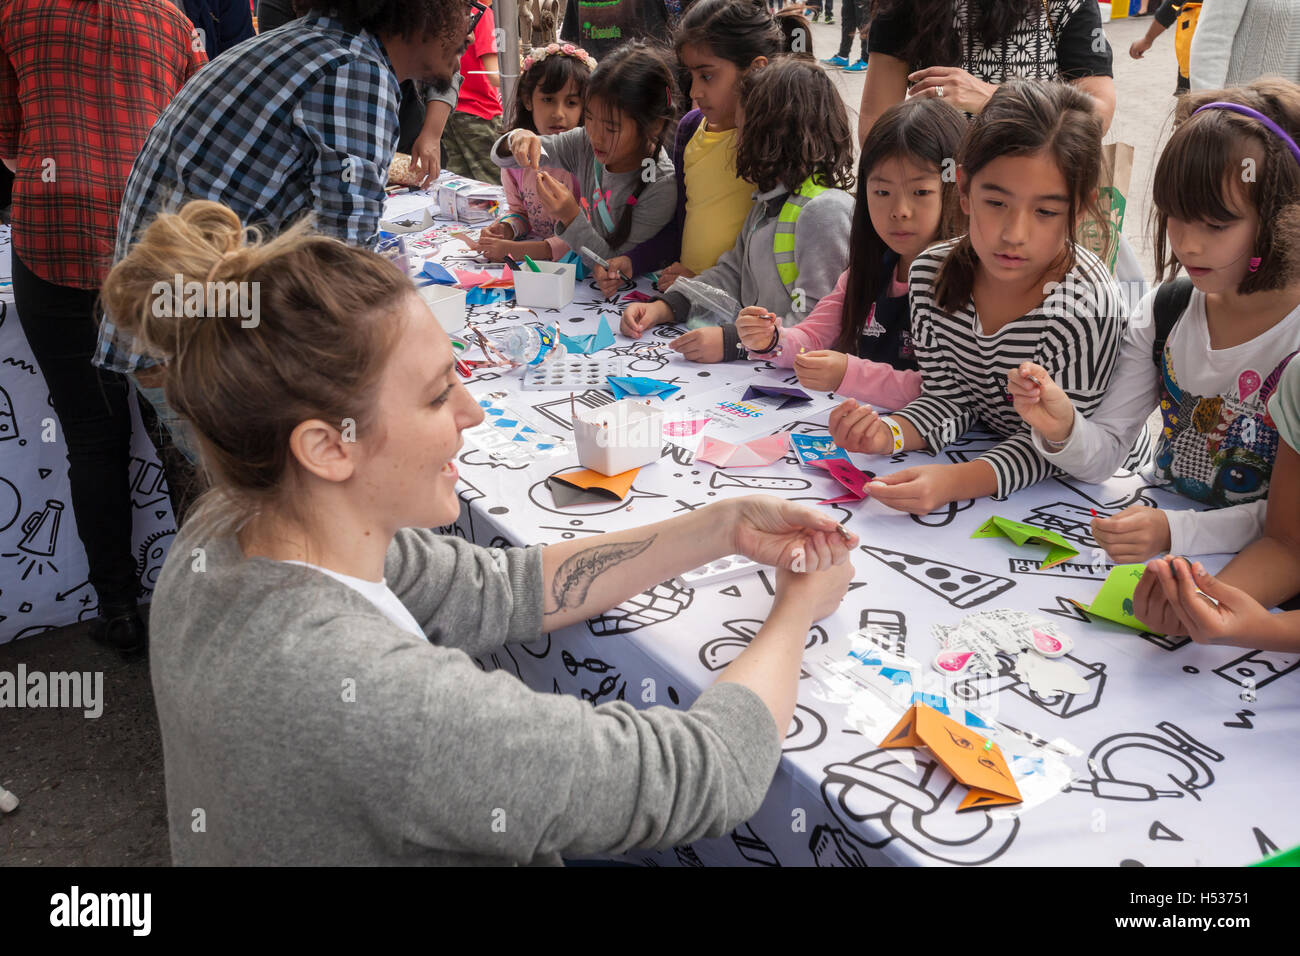 A worker from Blink Blink explains the company's DIY circuitry tools to children at the Geek Street Fair in - Stock Image